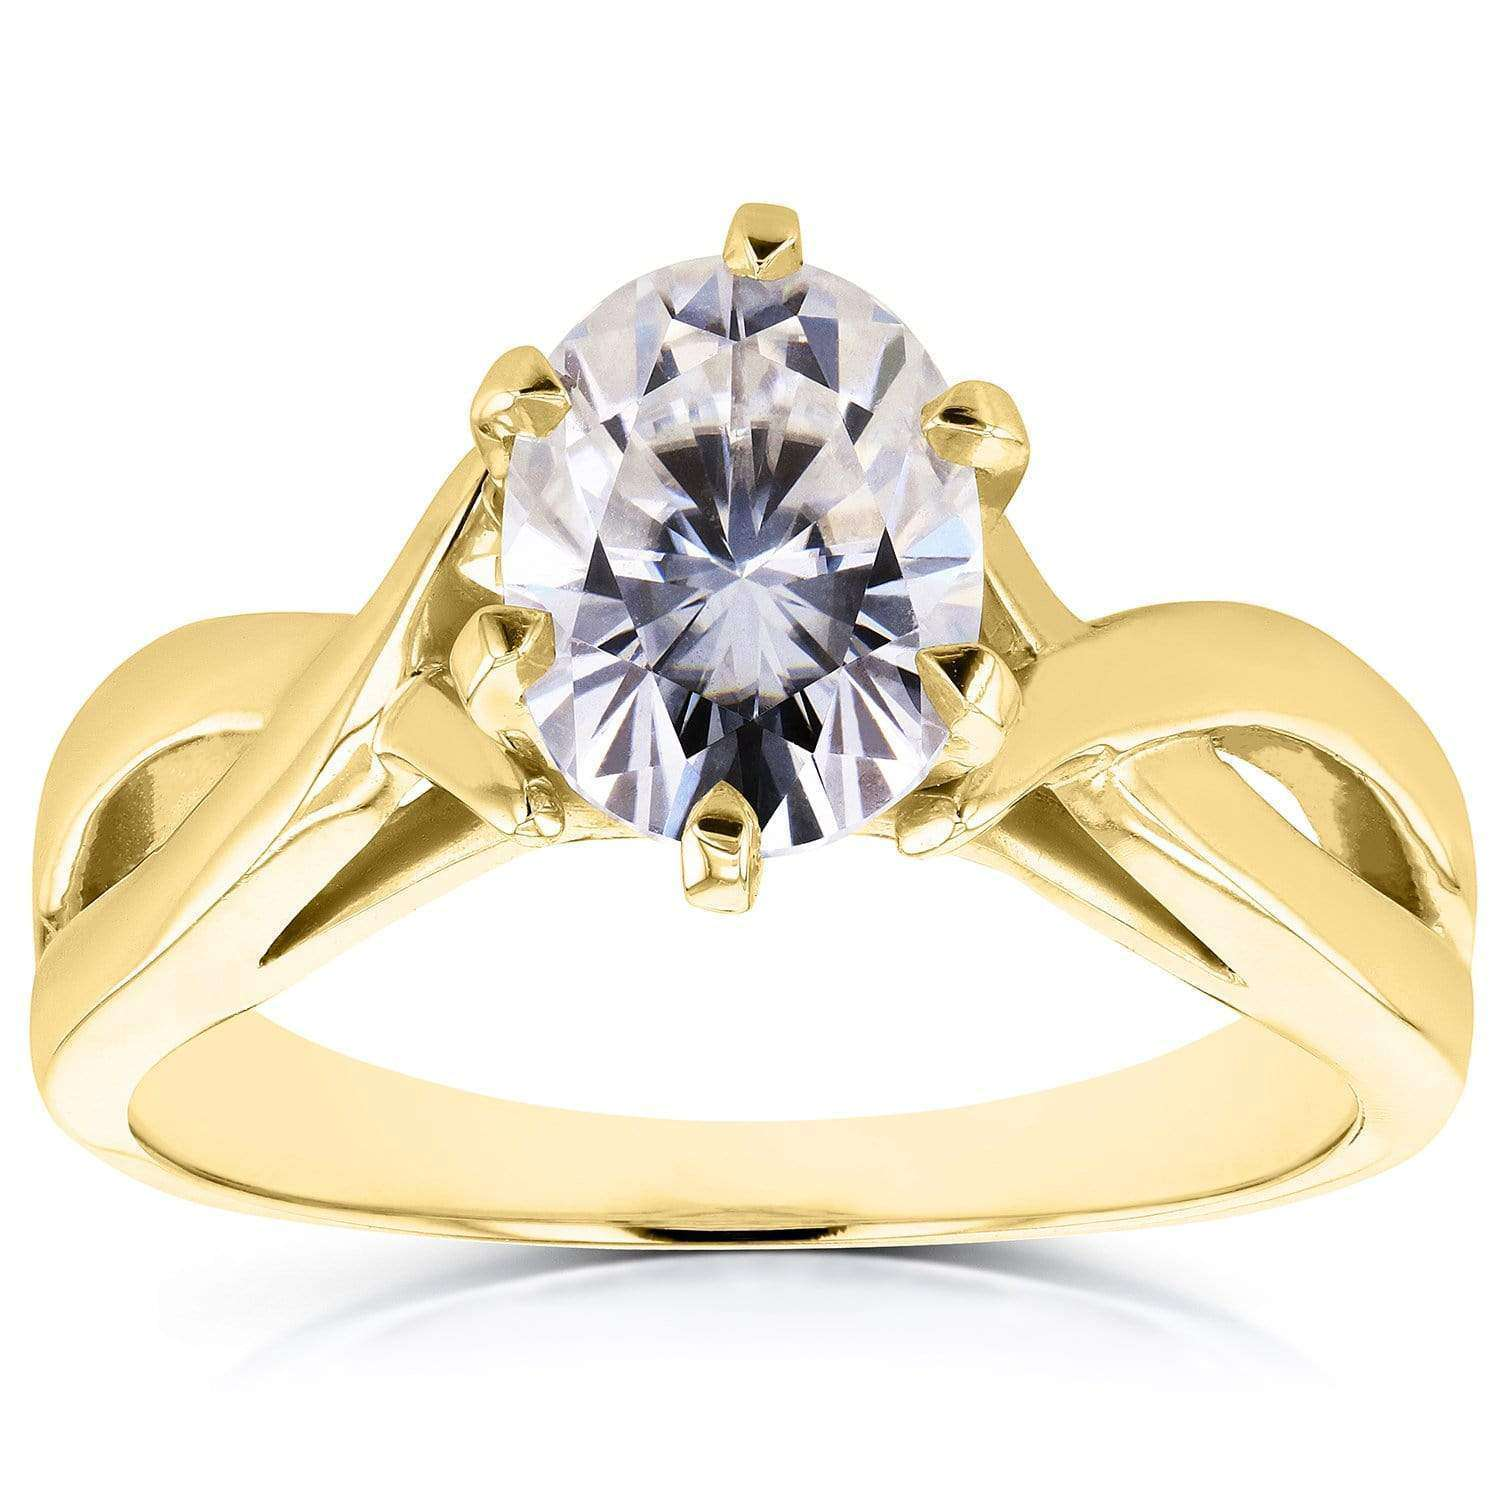 Cheap Near-Colorless (F-G) Oval Moissanite Solitaire Crossover Ring 1 1/2 CTW in 14k Yellow Gold - 4.5